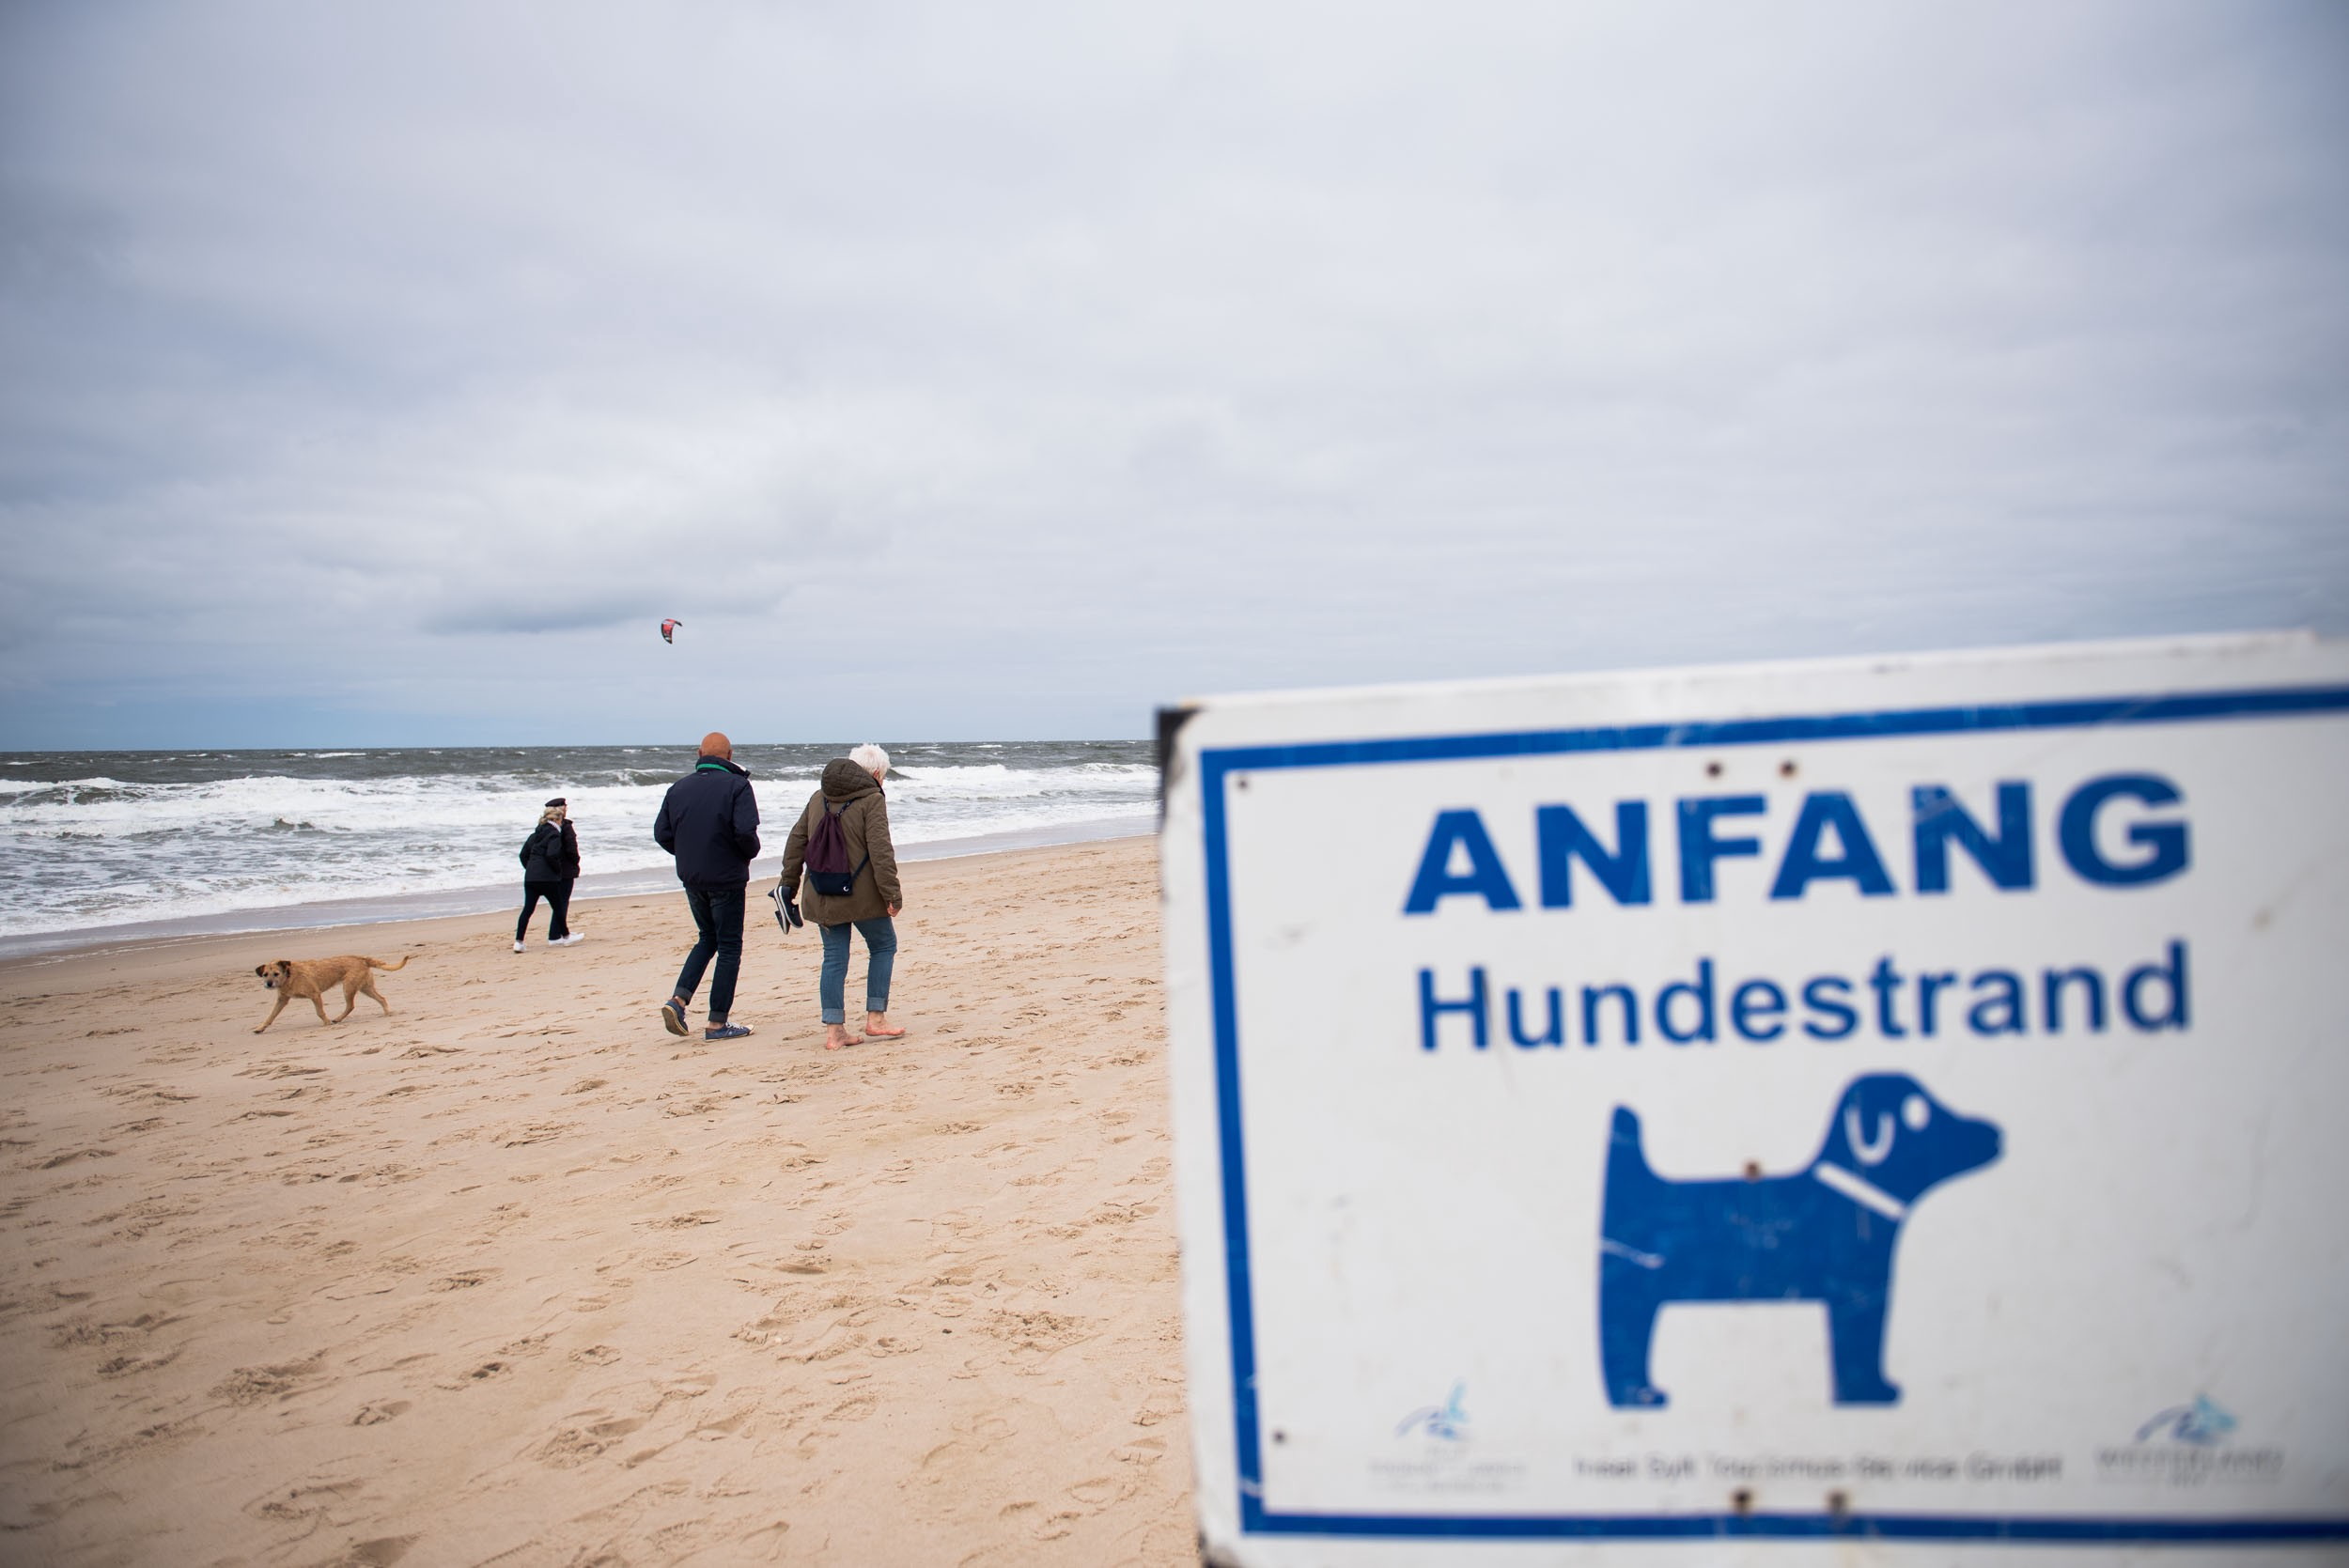 Mom and dad pass a sign that signals the beginning of the dog beach, as a dog walks in the opposite direction. GER, 05/2019